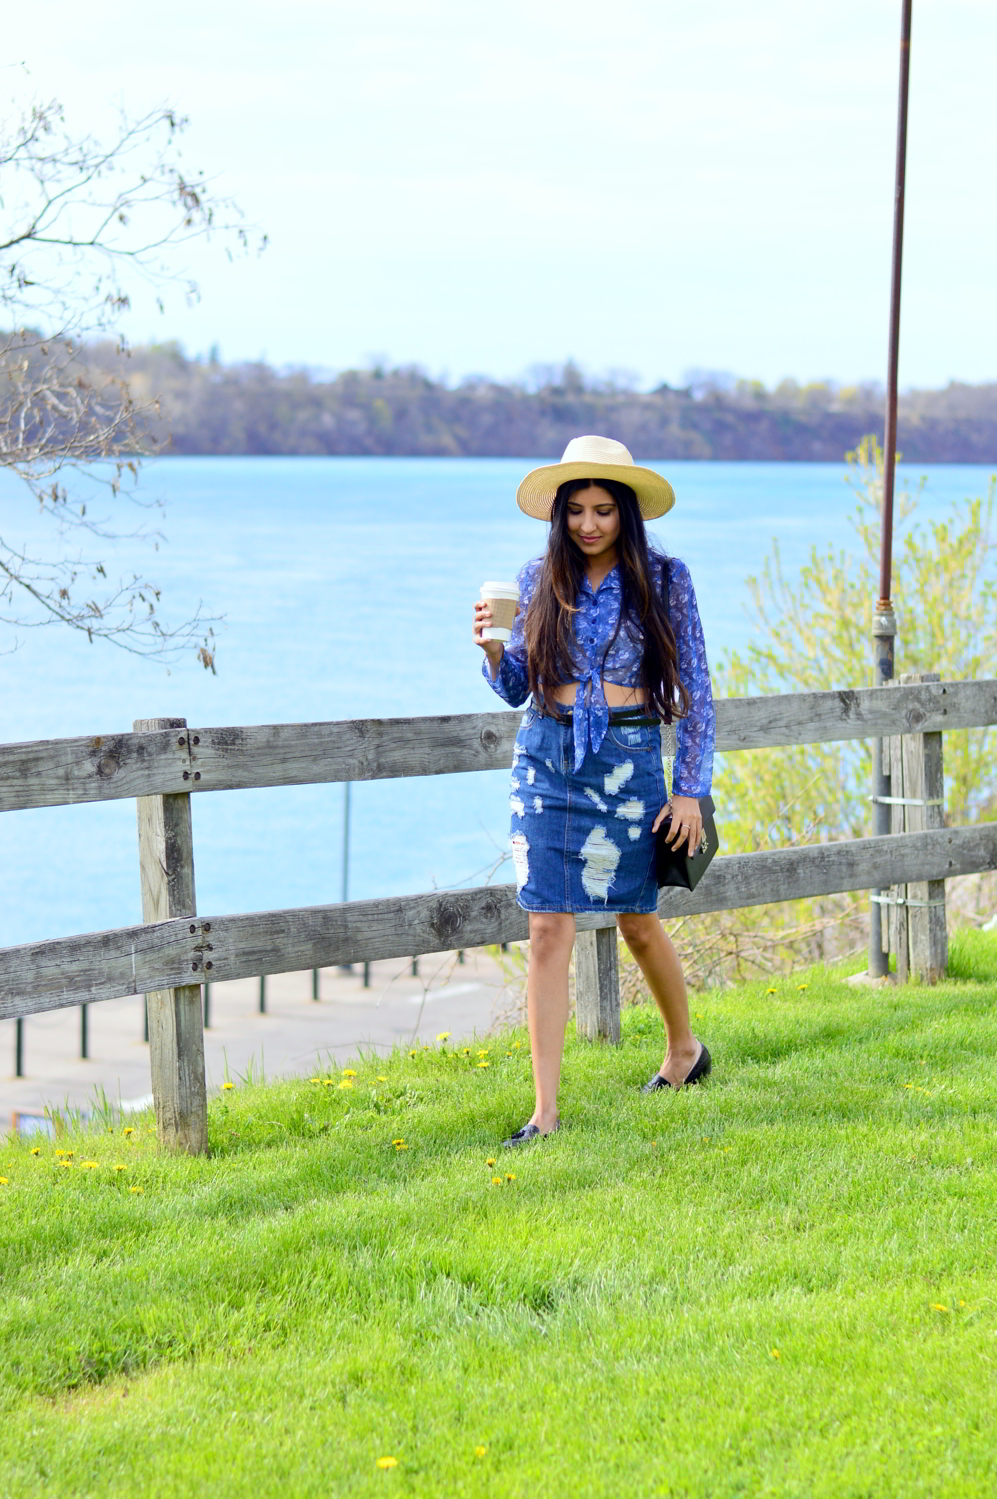 distressed-deim-skirt-retro-inspired-florals-outfit-upstate-new-york-travel-blogger 7